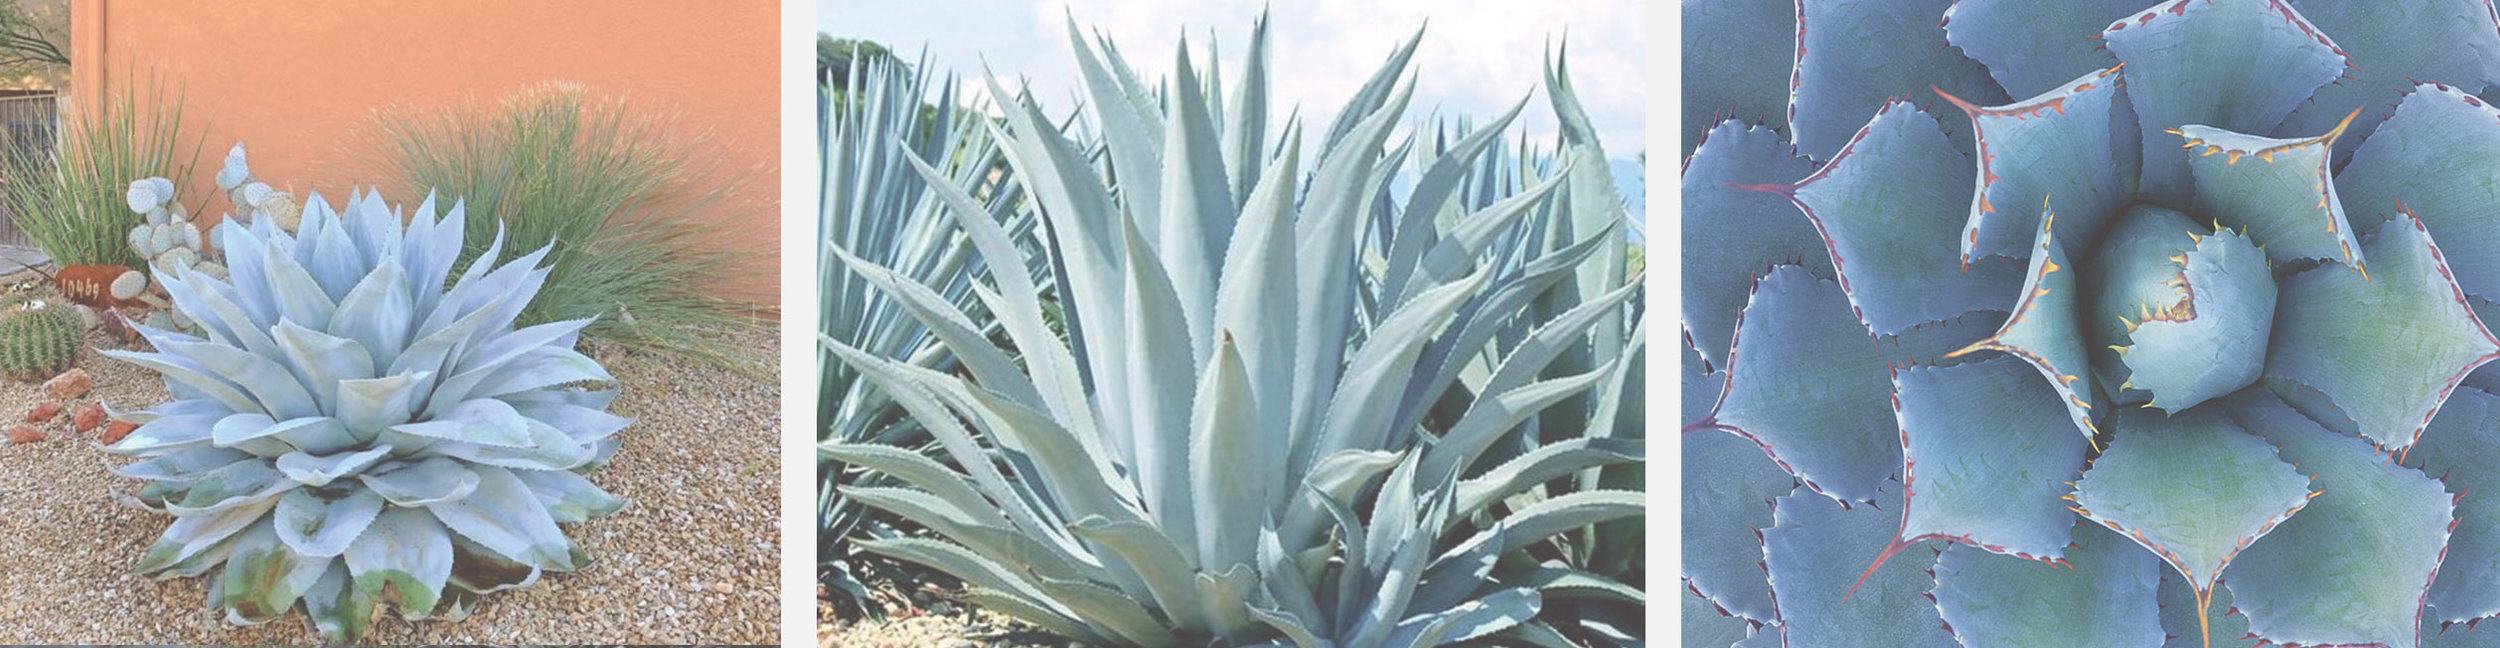 Blue Agave | Agave Tequilana